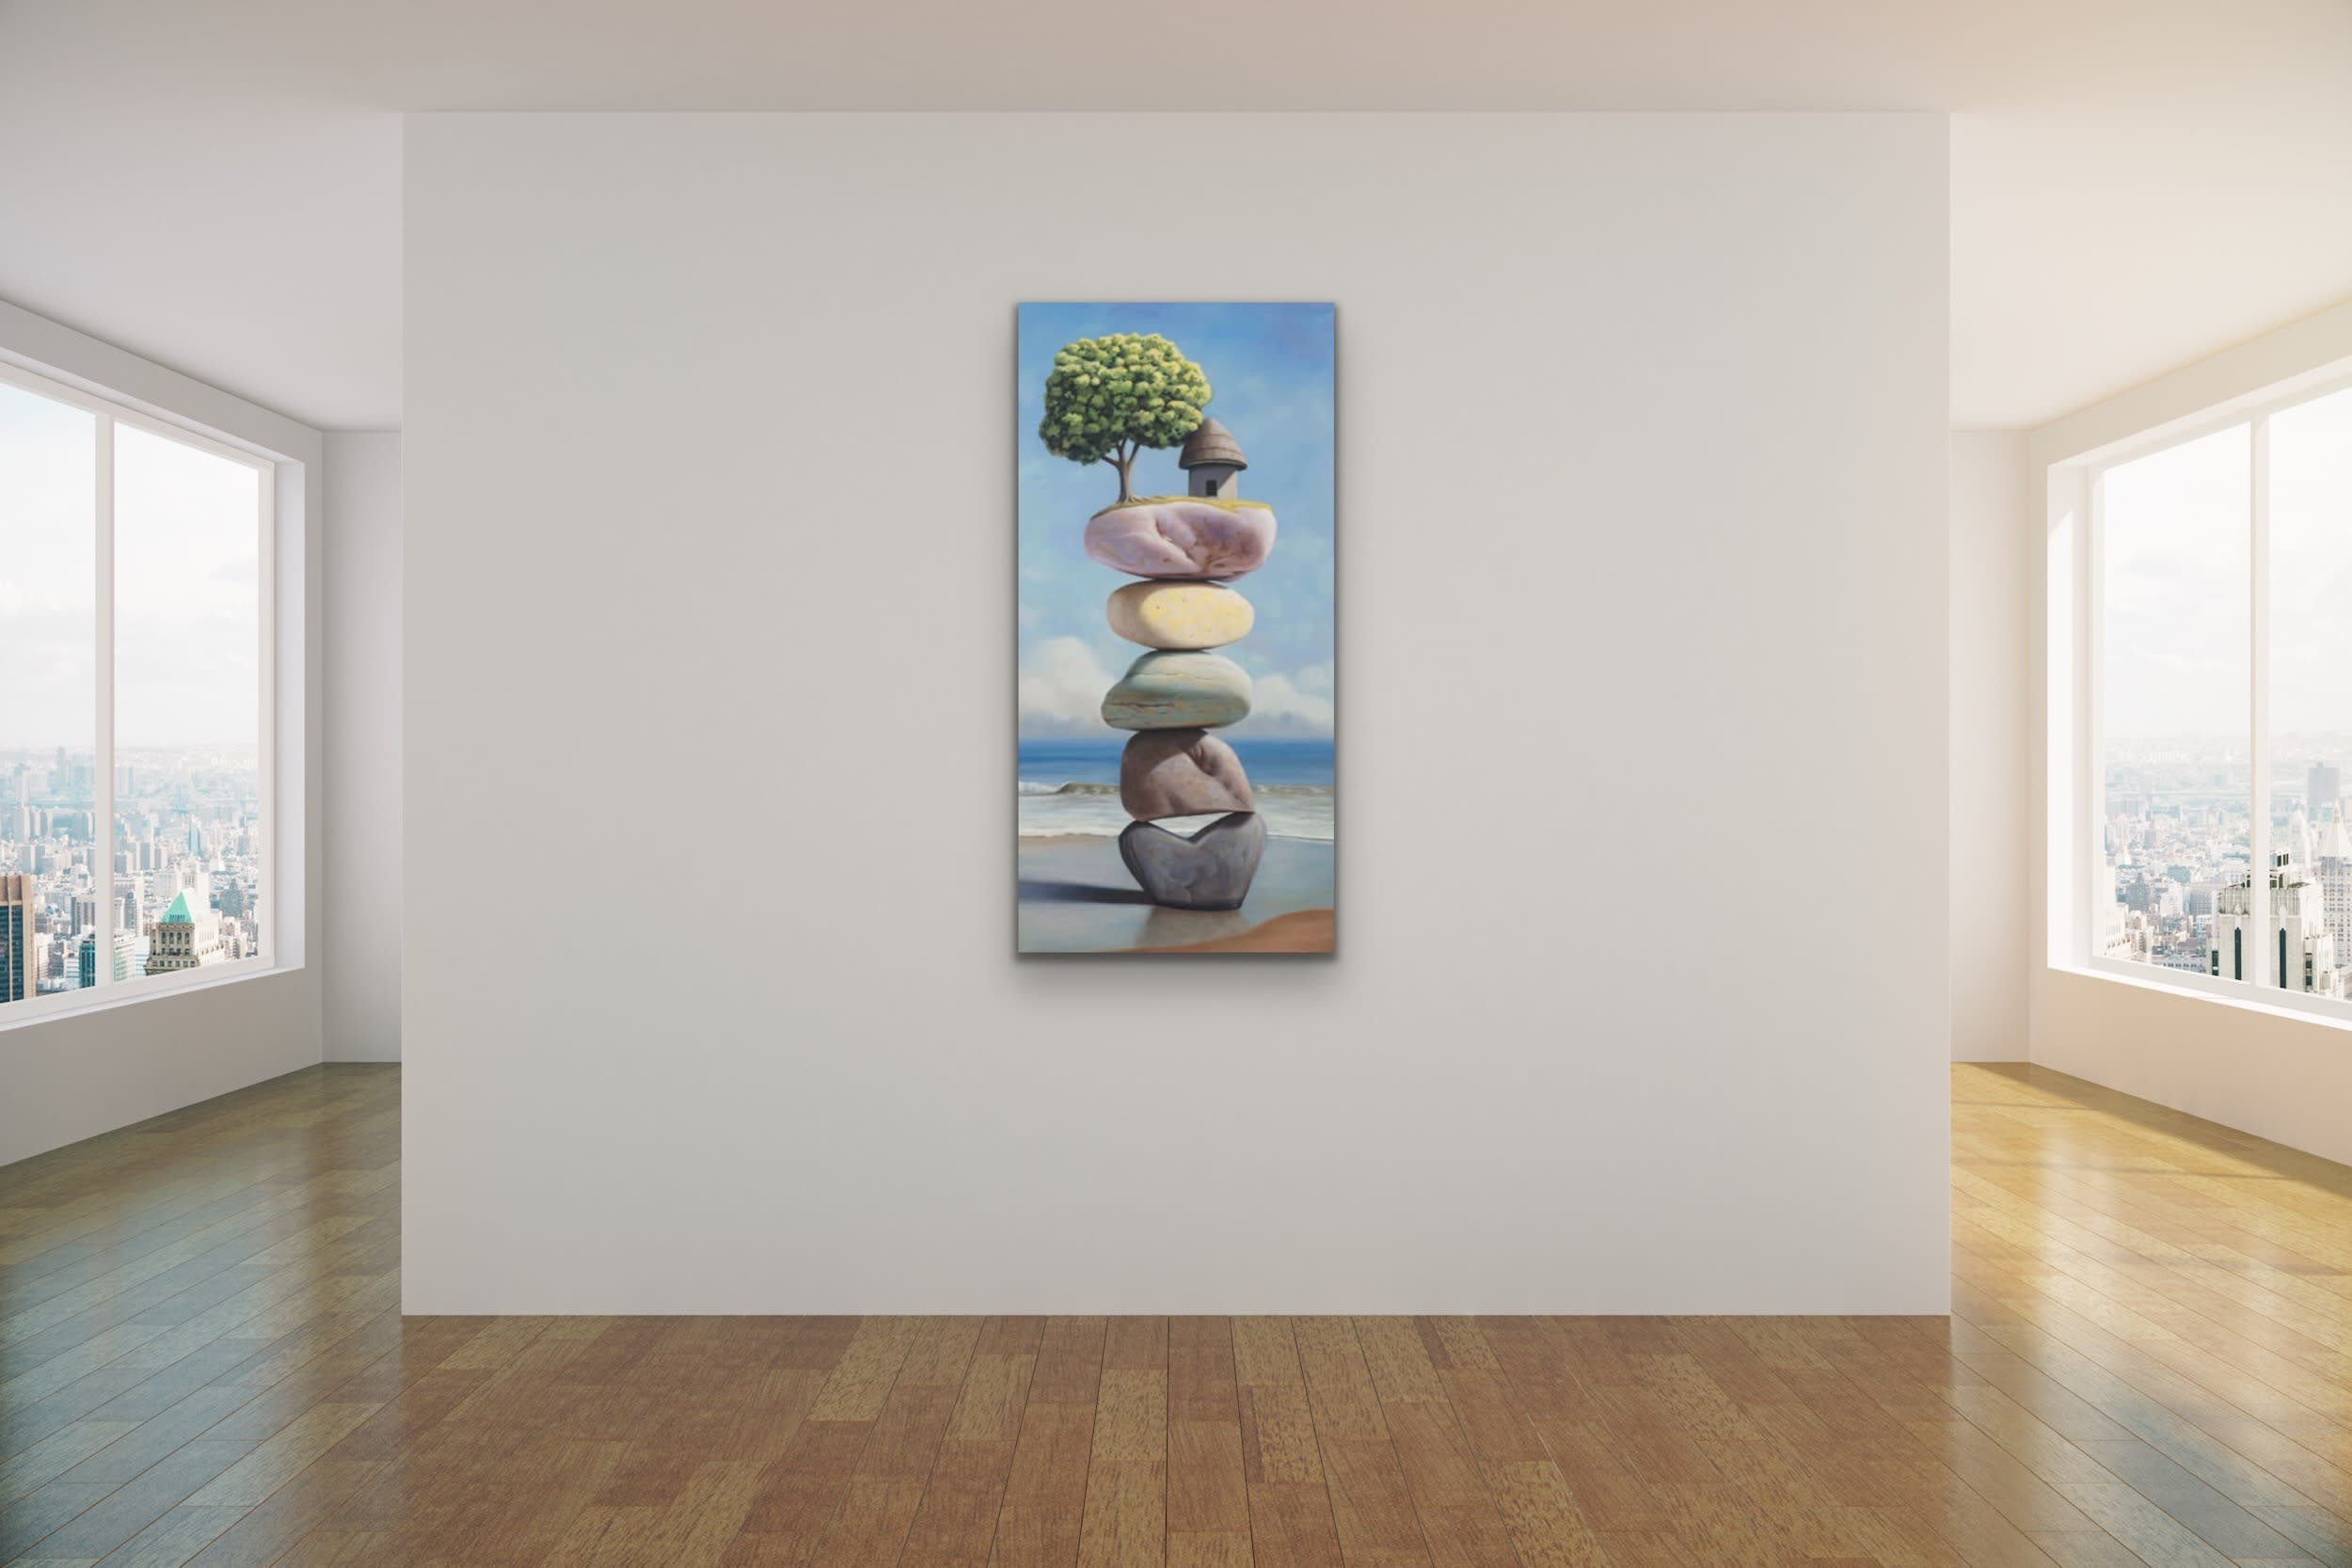 <div class='title'>           Paul Bond Magical Realism Poetry Serene Landscape Animals Nature Surreal Metaphorical Whimsical Fantasy Evo Art Maui Lahaina Front Street Art Gallery 39         </div>